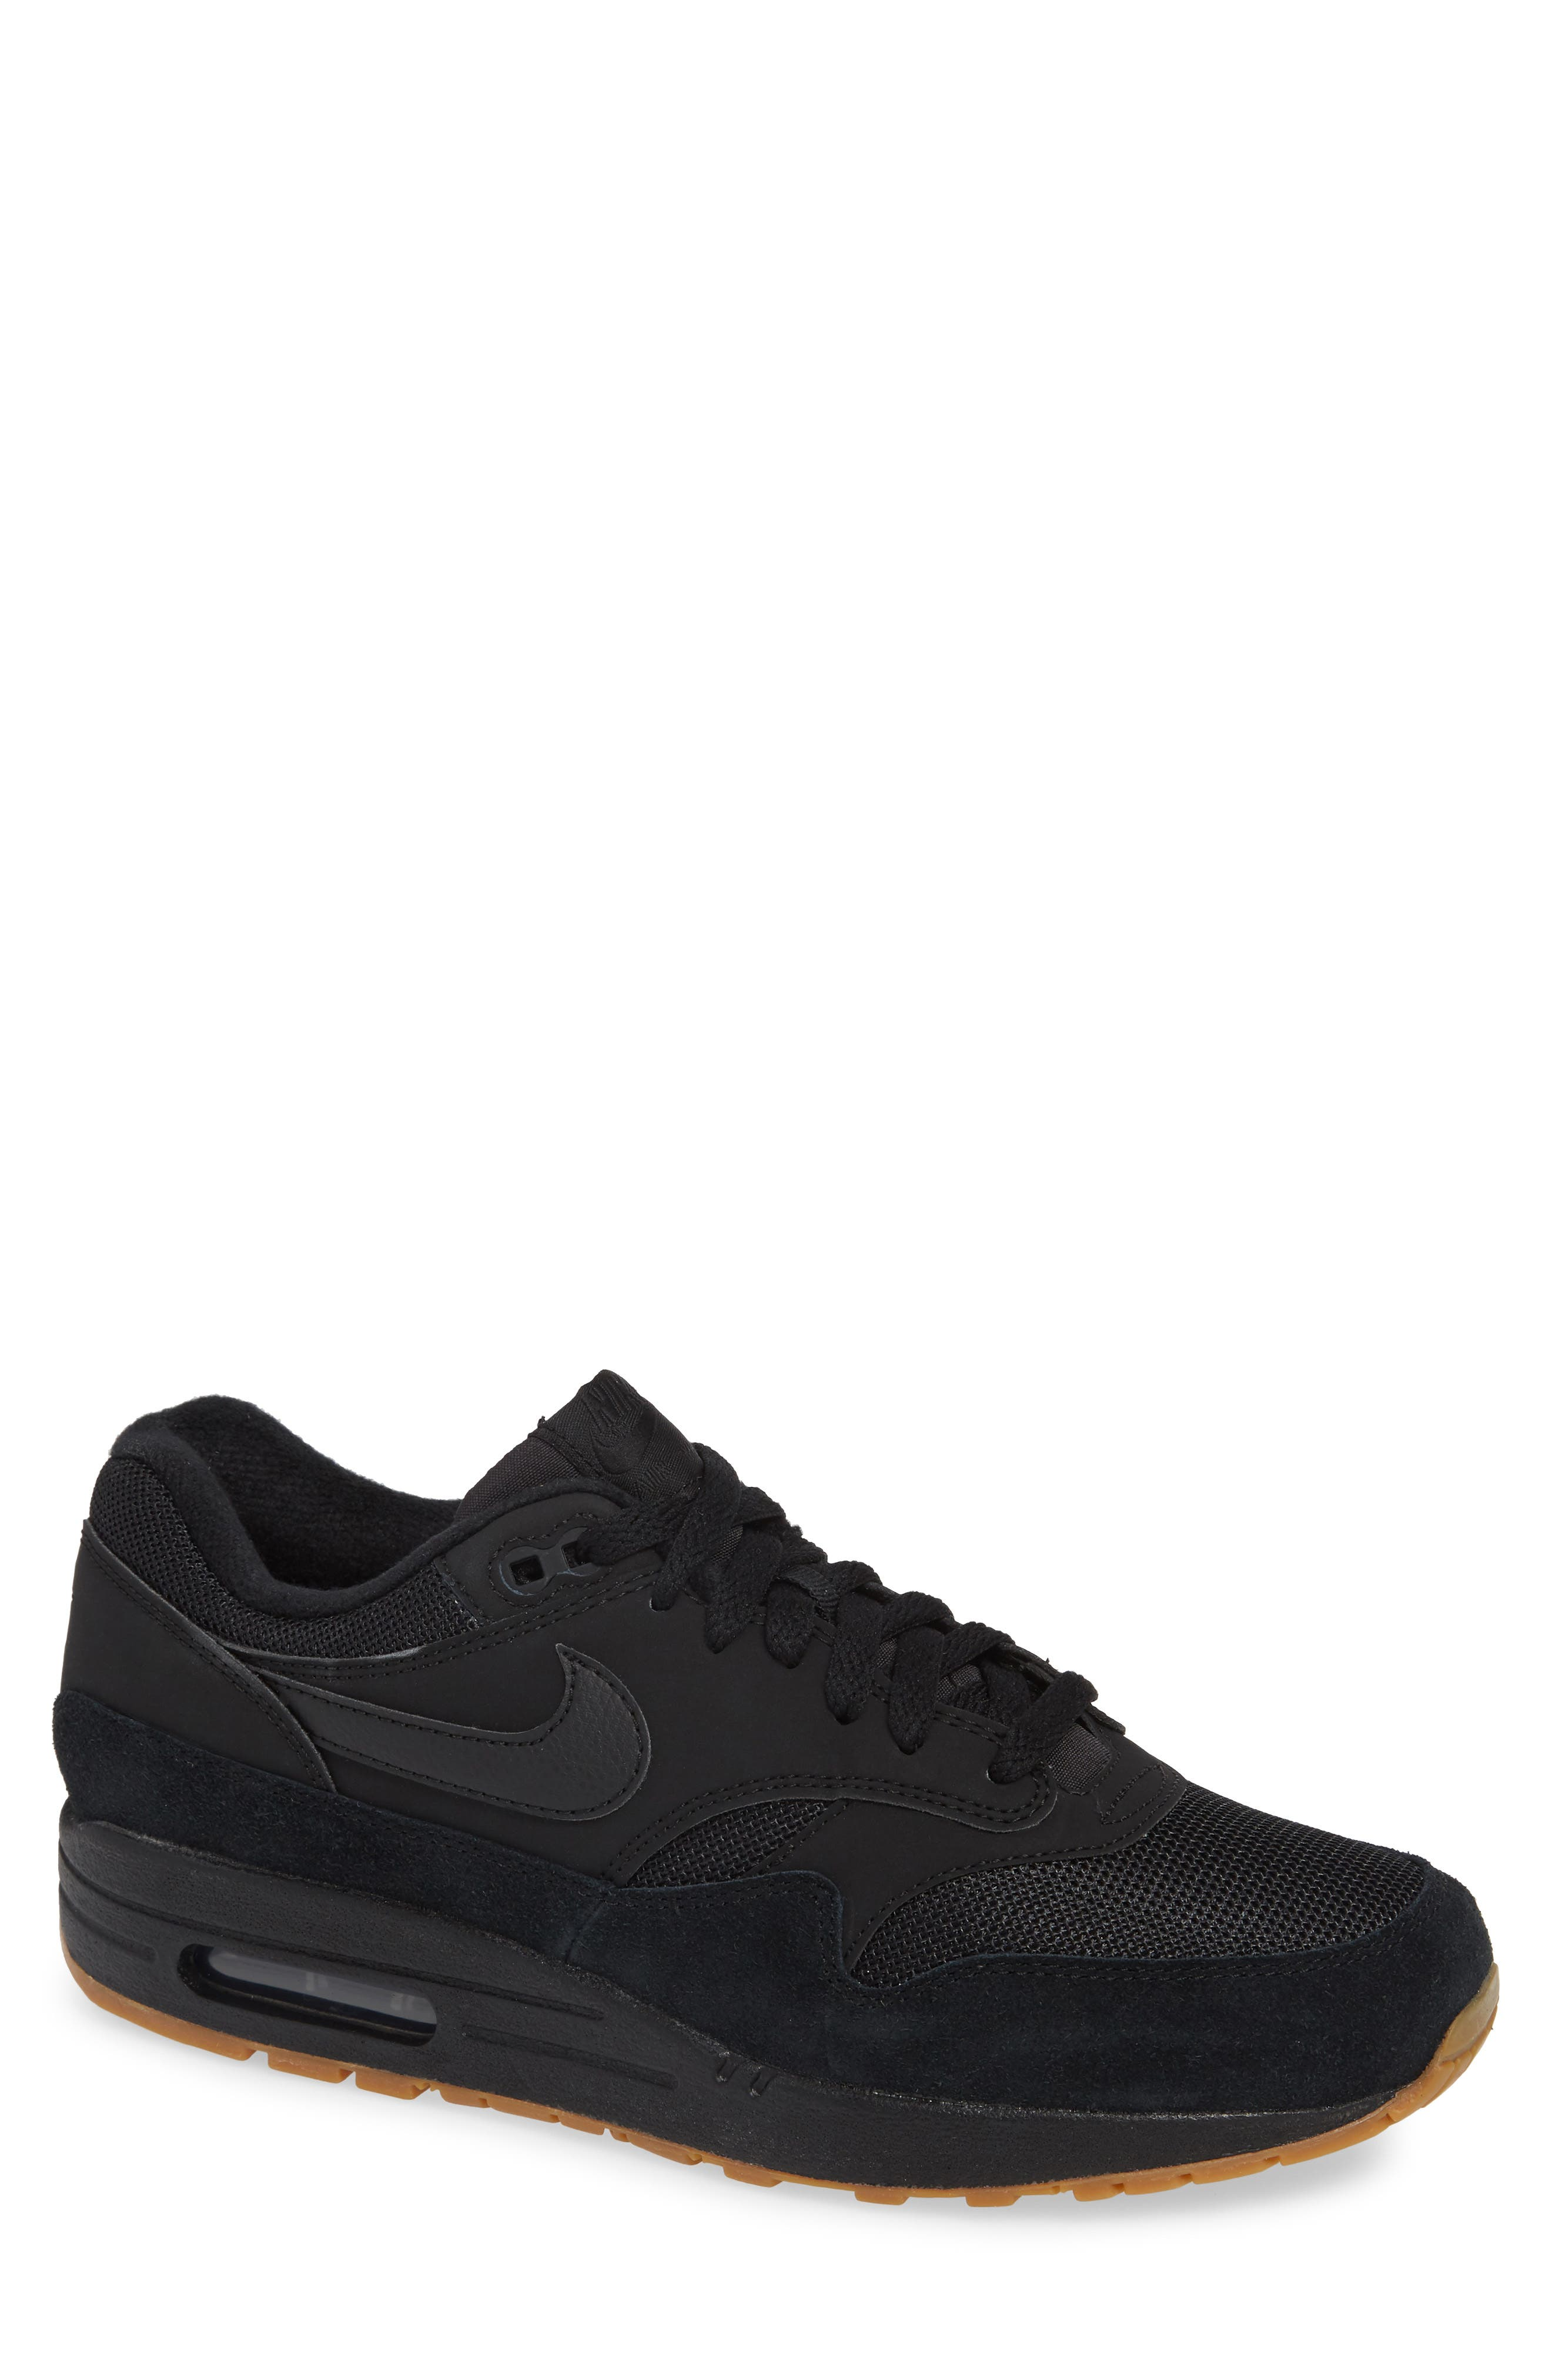 Air Max 1 Sneaker,                             Main thumbnail 1, color,                             BLACK/ BLACK/ GUM MEDIUM BROWN